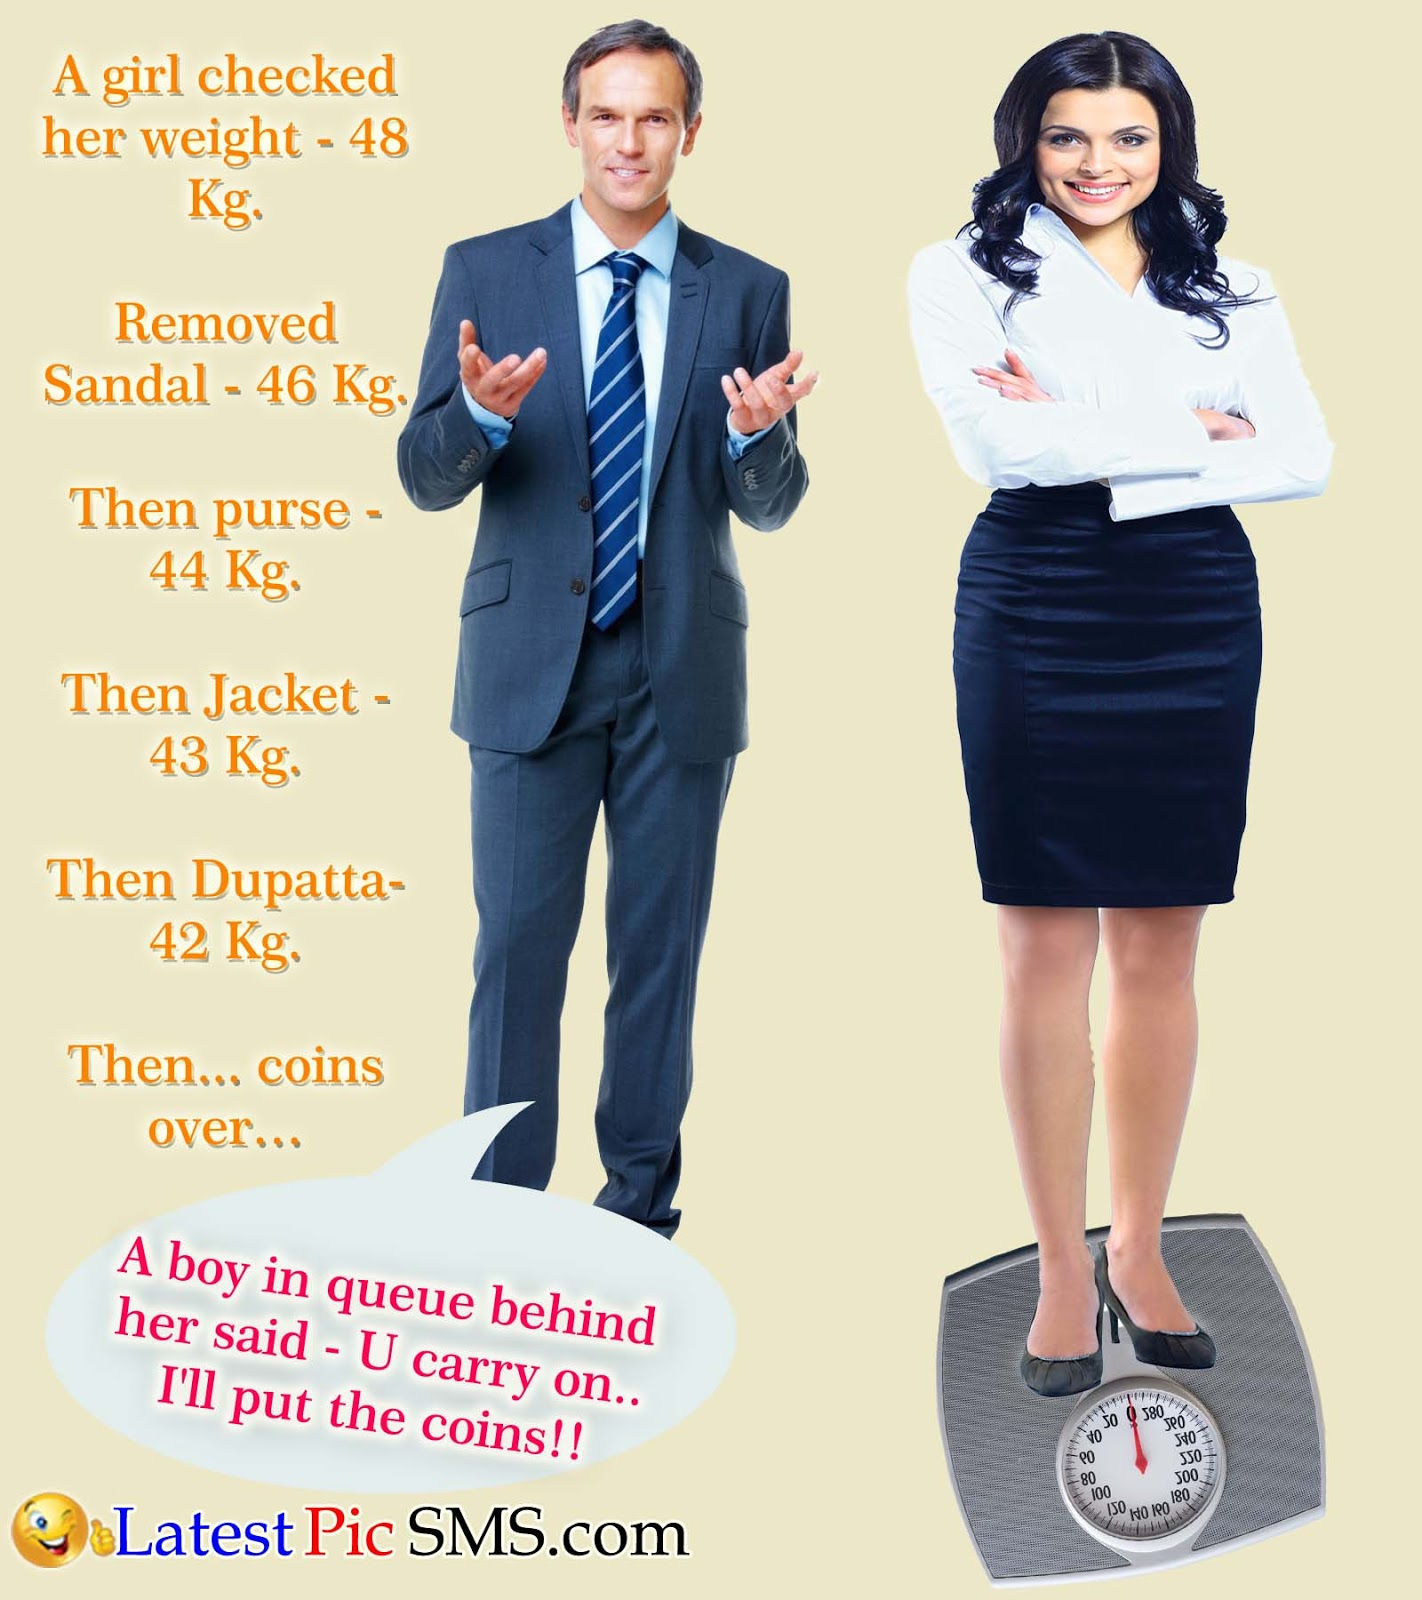 girl weight funny jokes